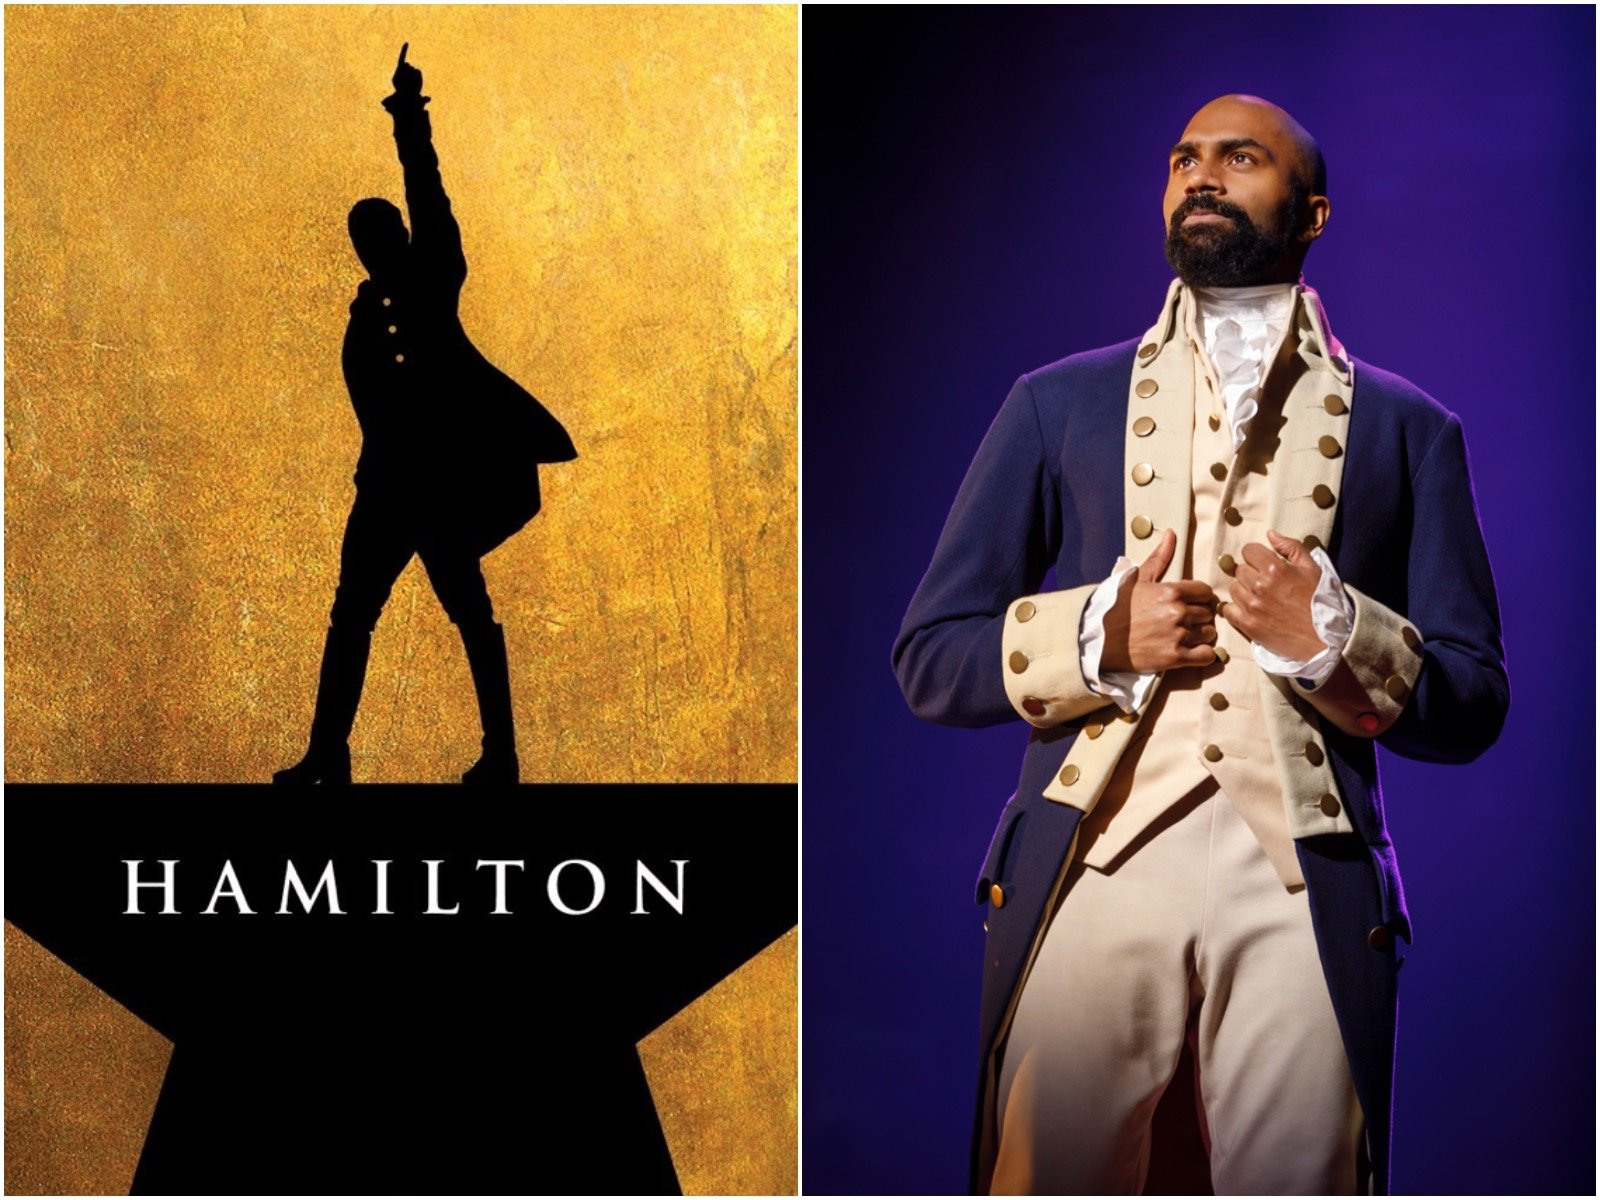 A Conversation With Aaron Burr From Hamilton